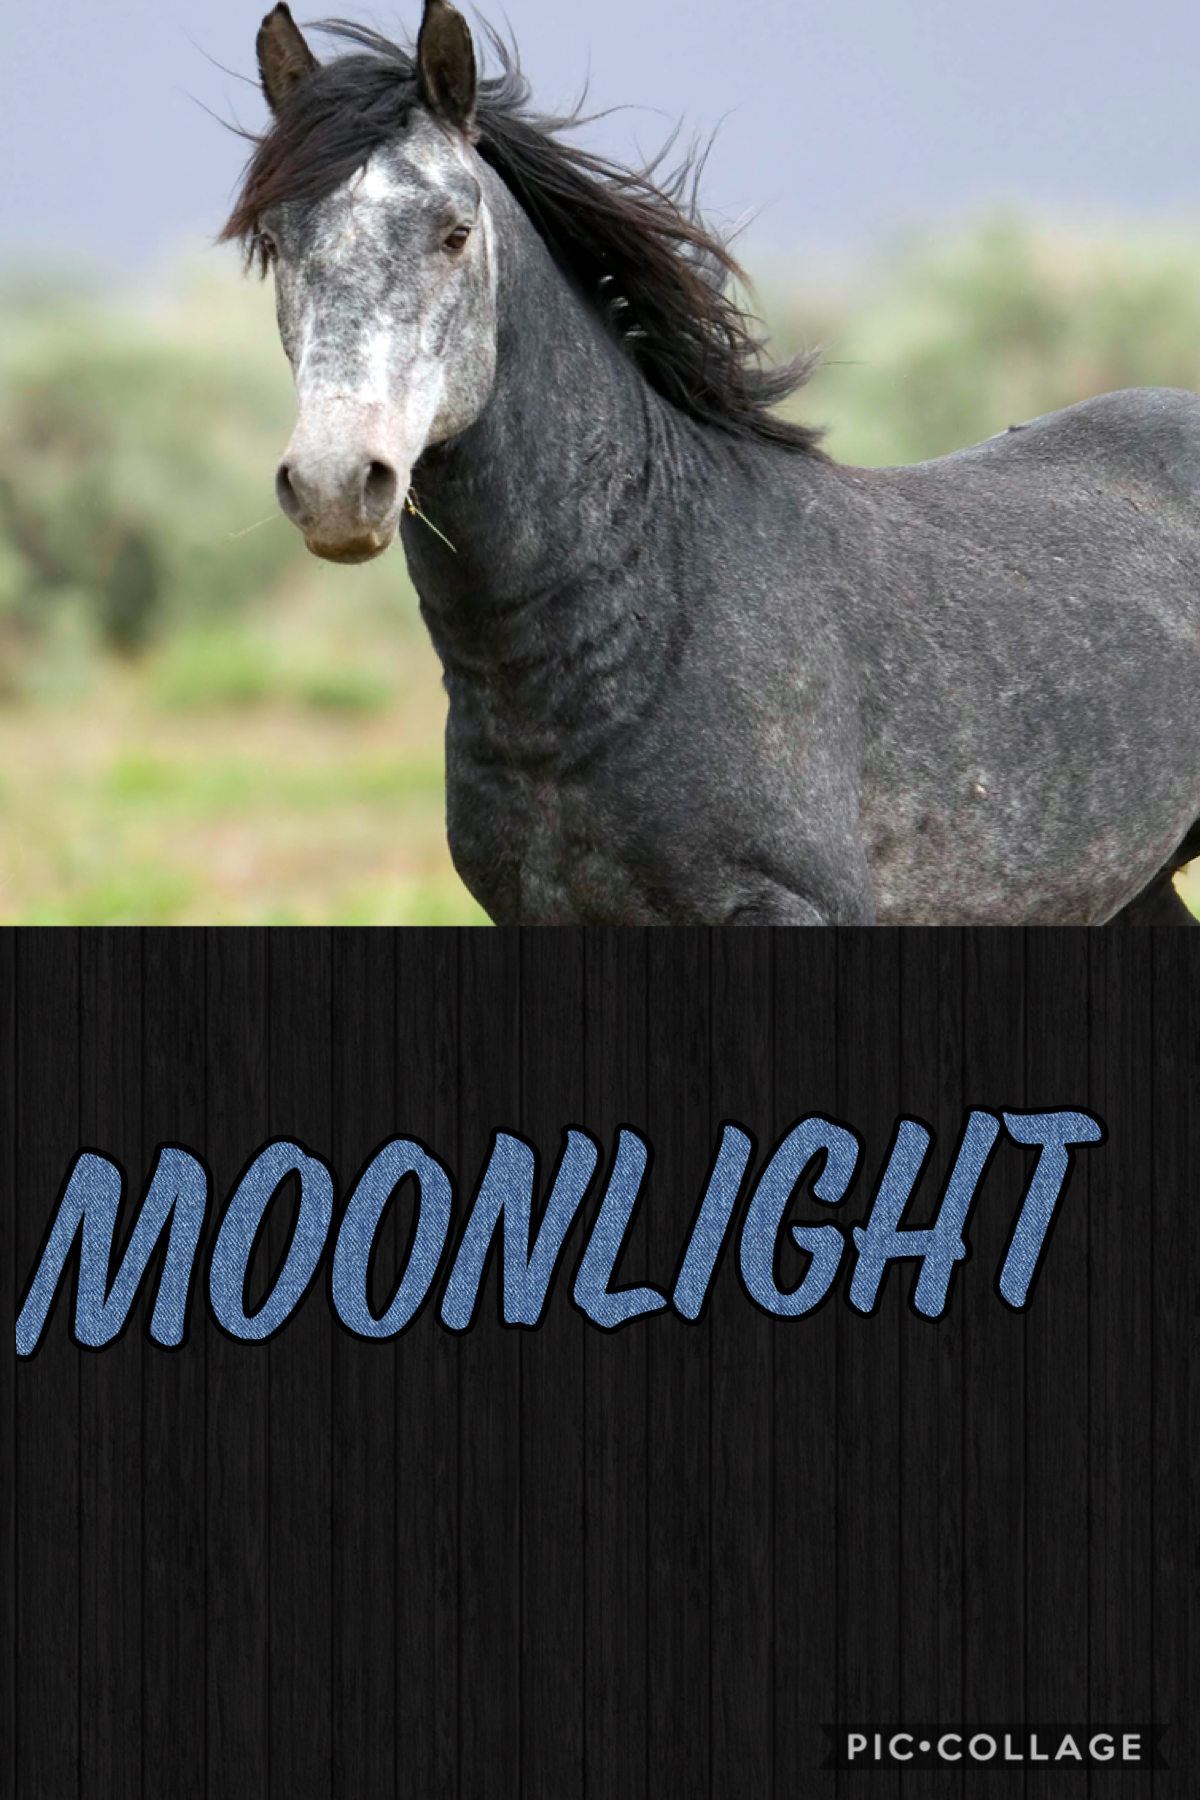 My sisters horse Moonlight